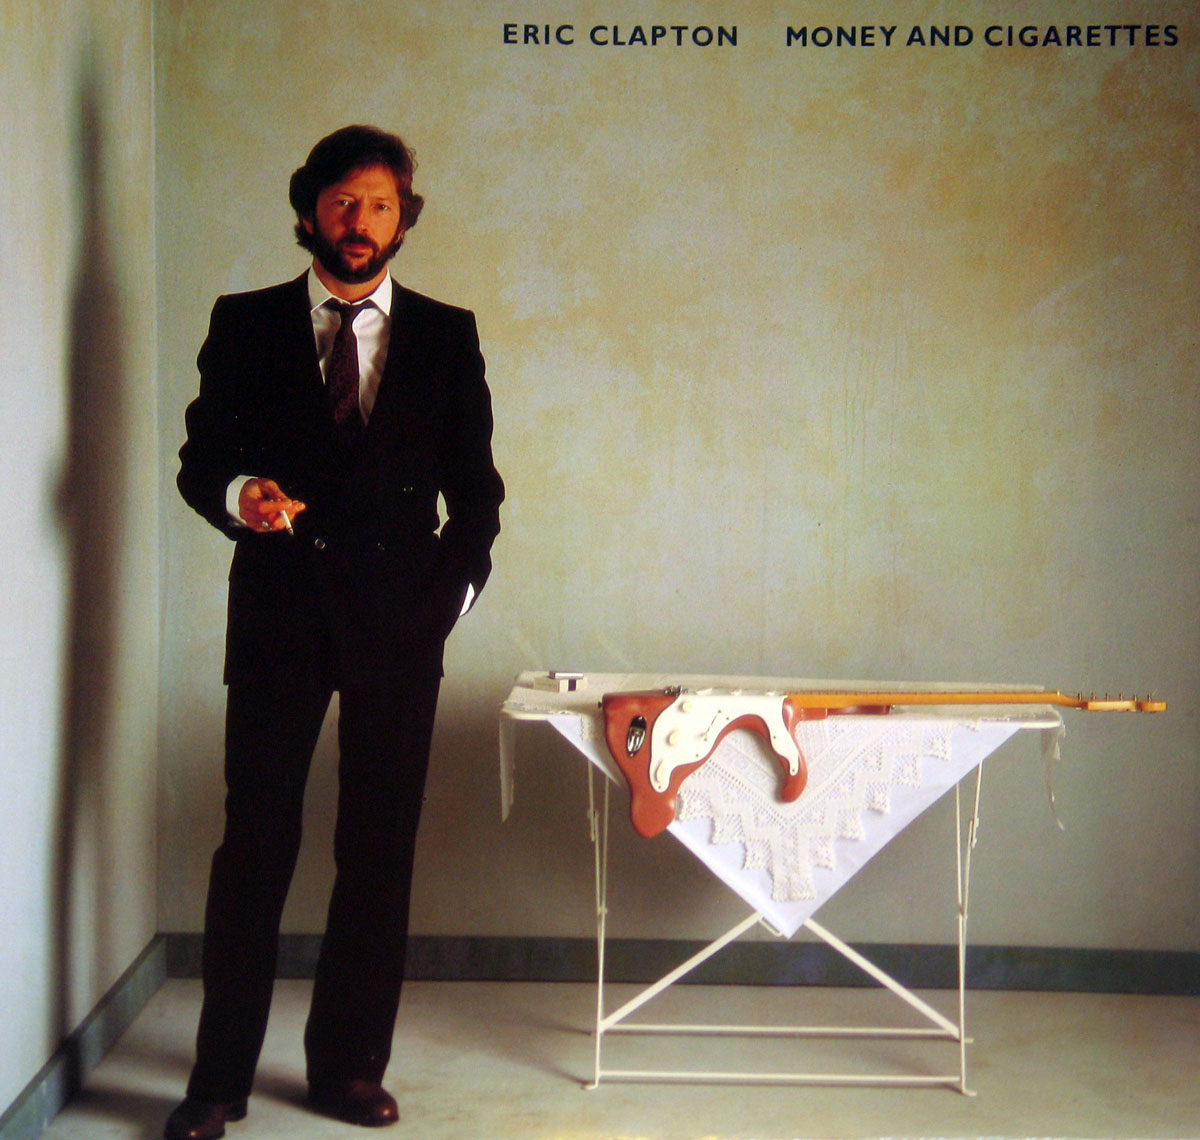 High Resolution Photo ERIC CLAPTON Money and Cigarettes